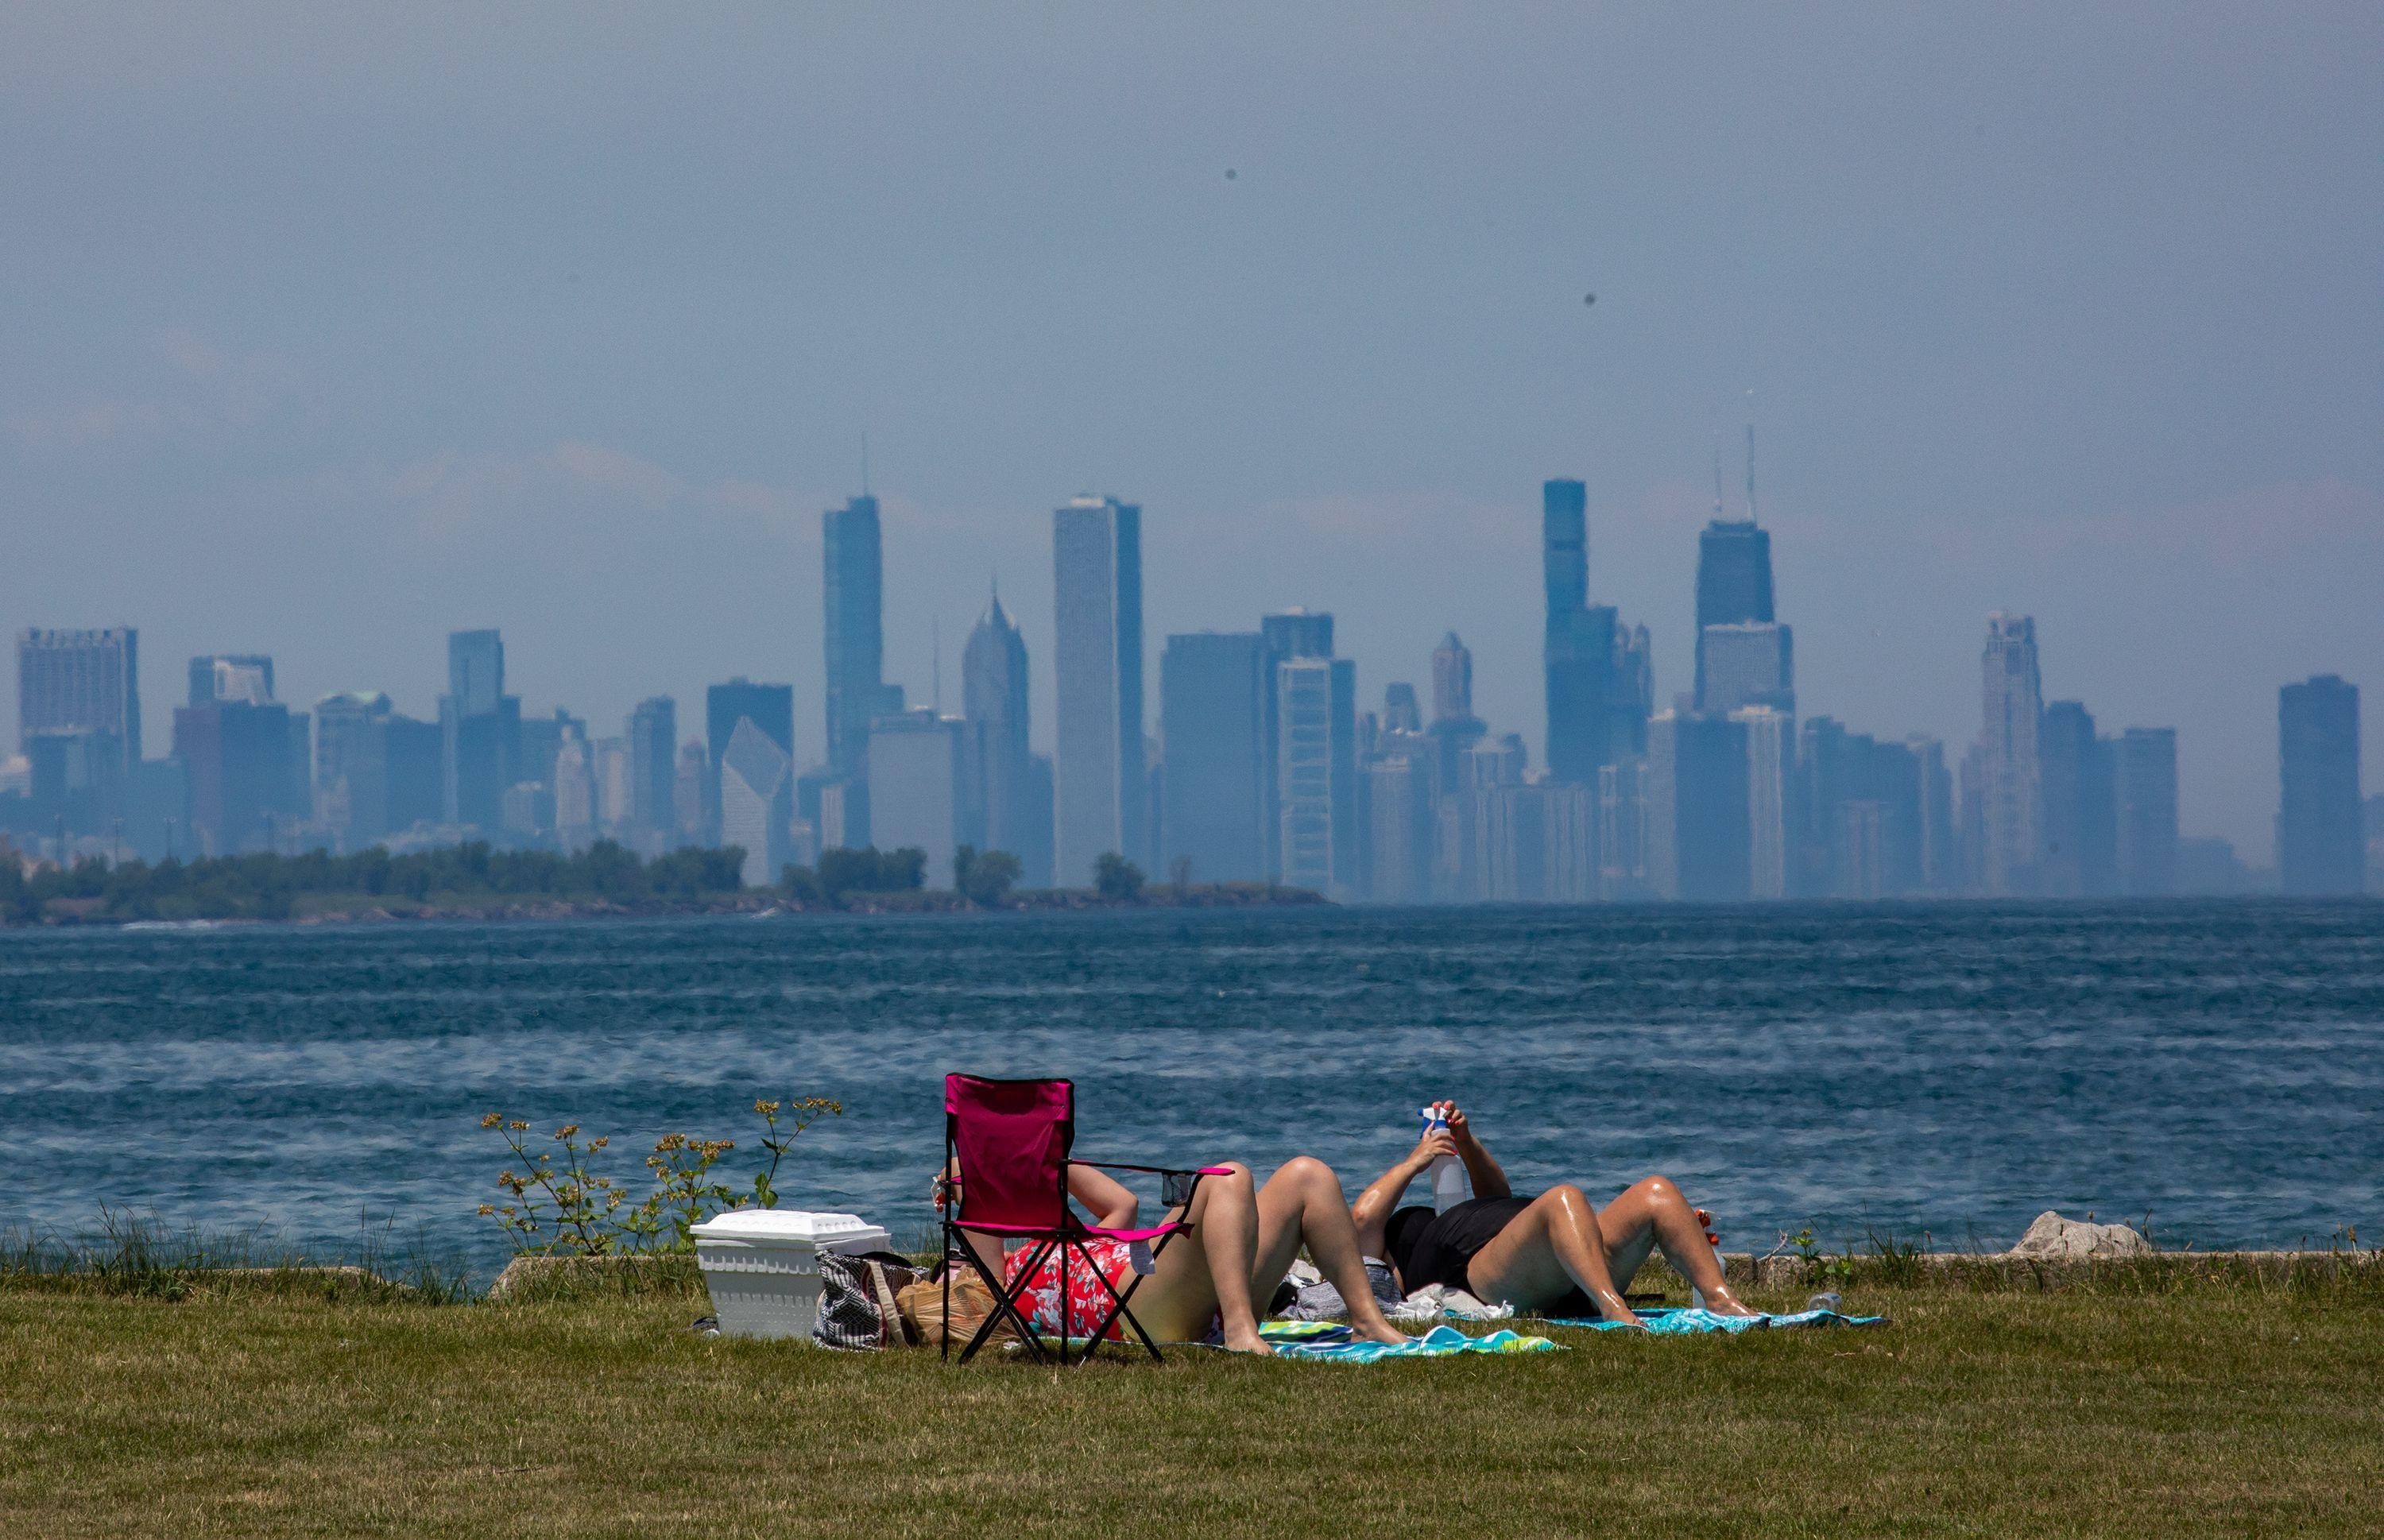 Holiday weekend begins with hot weather in Chicago area and warnings from officials to stay safe